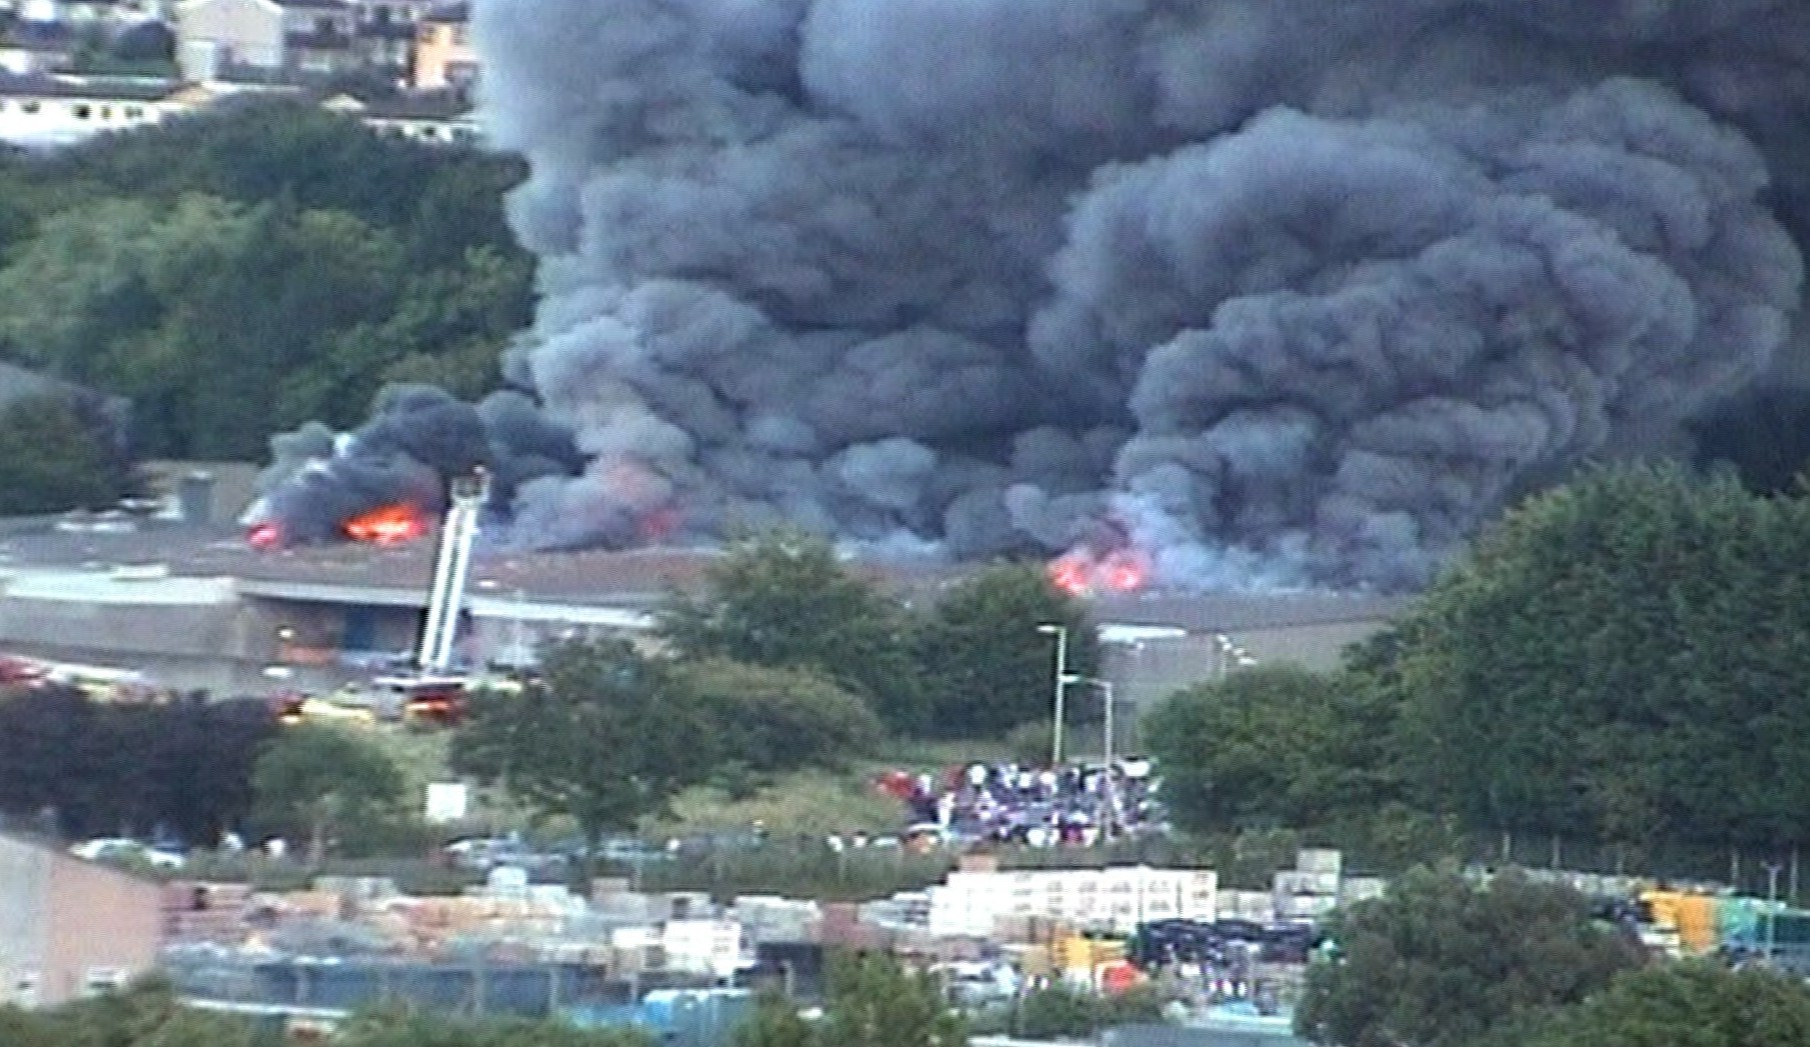 The fire at the factory in Plymouth ended the business.